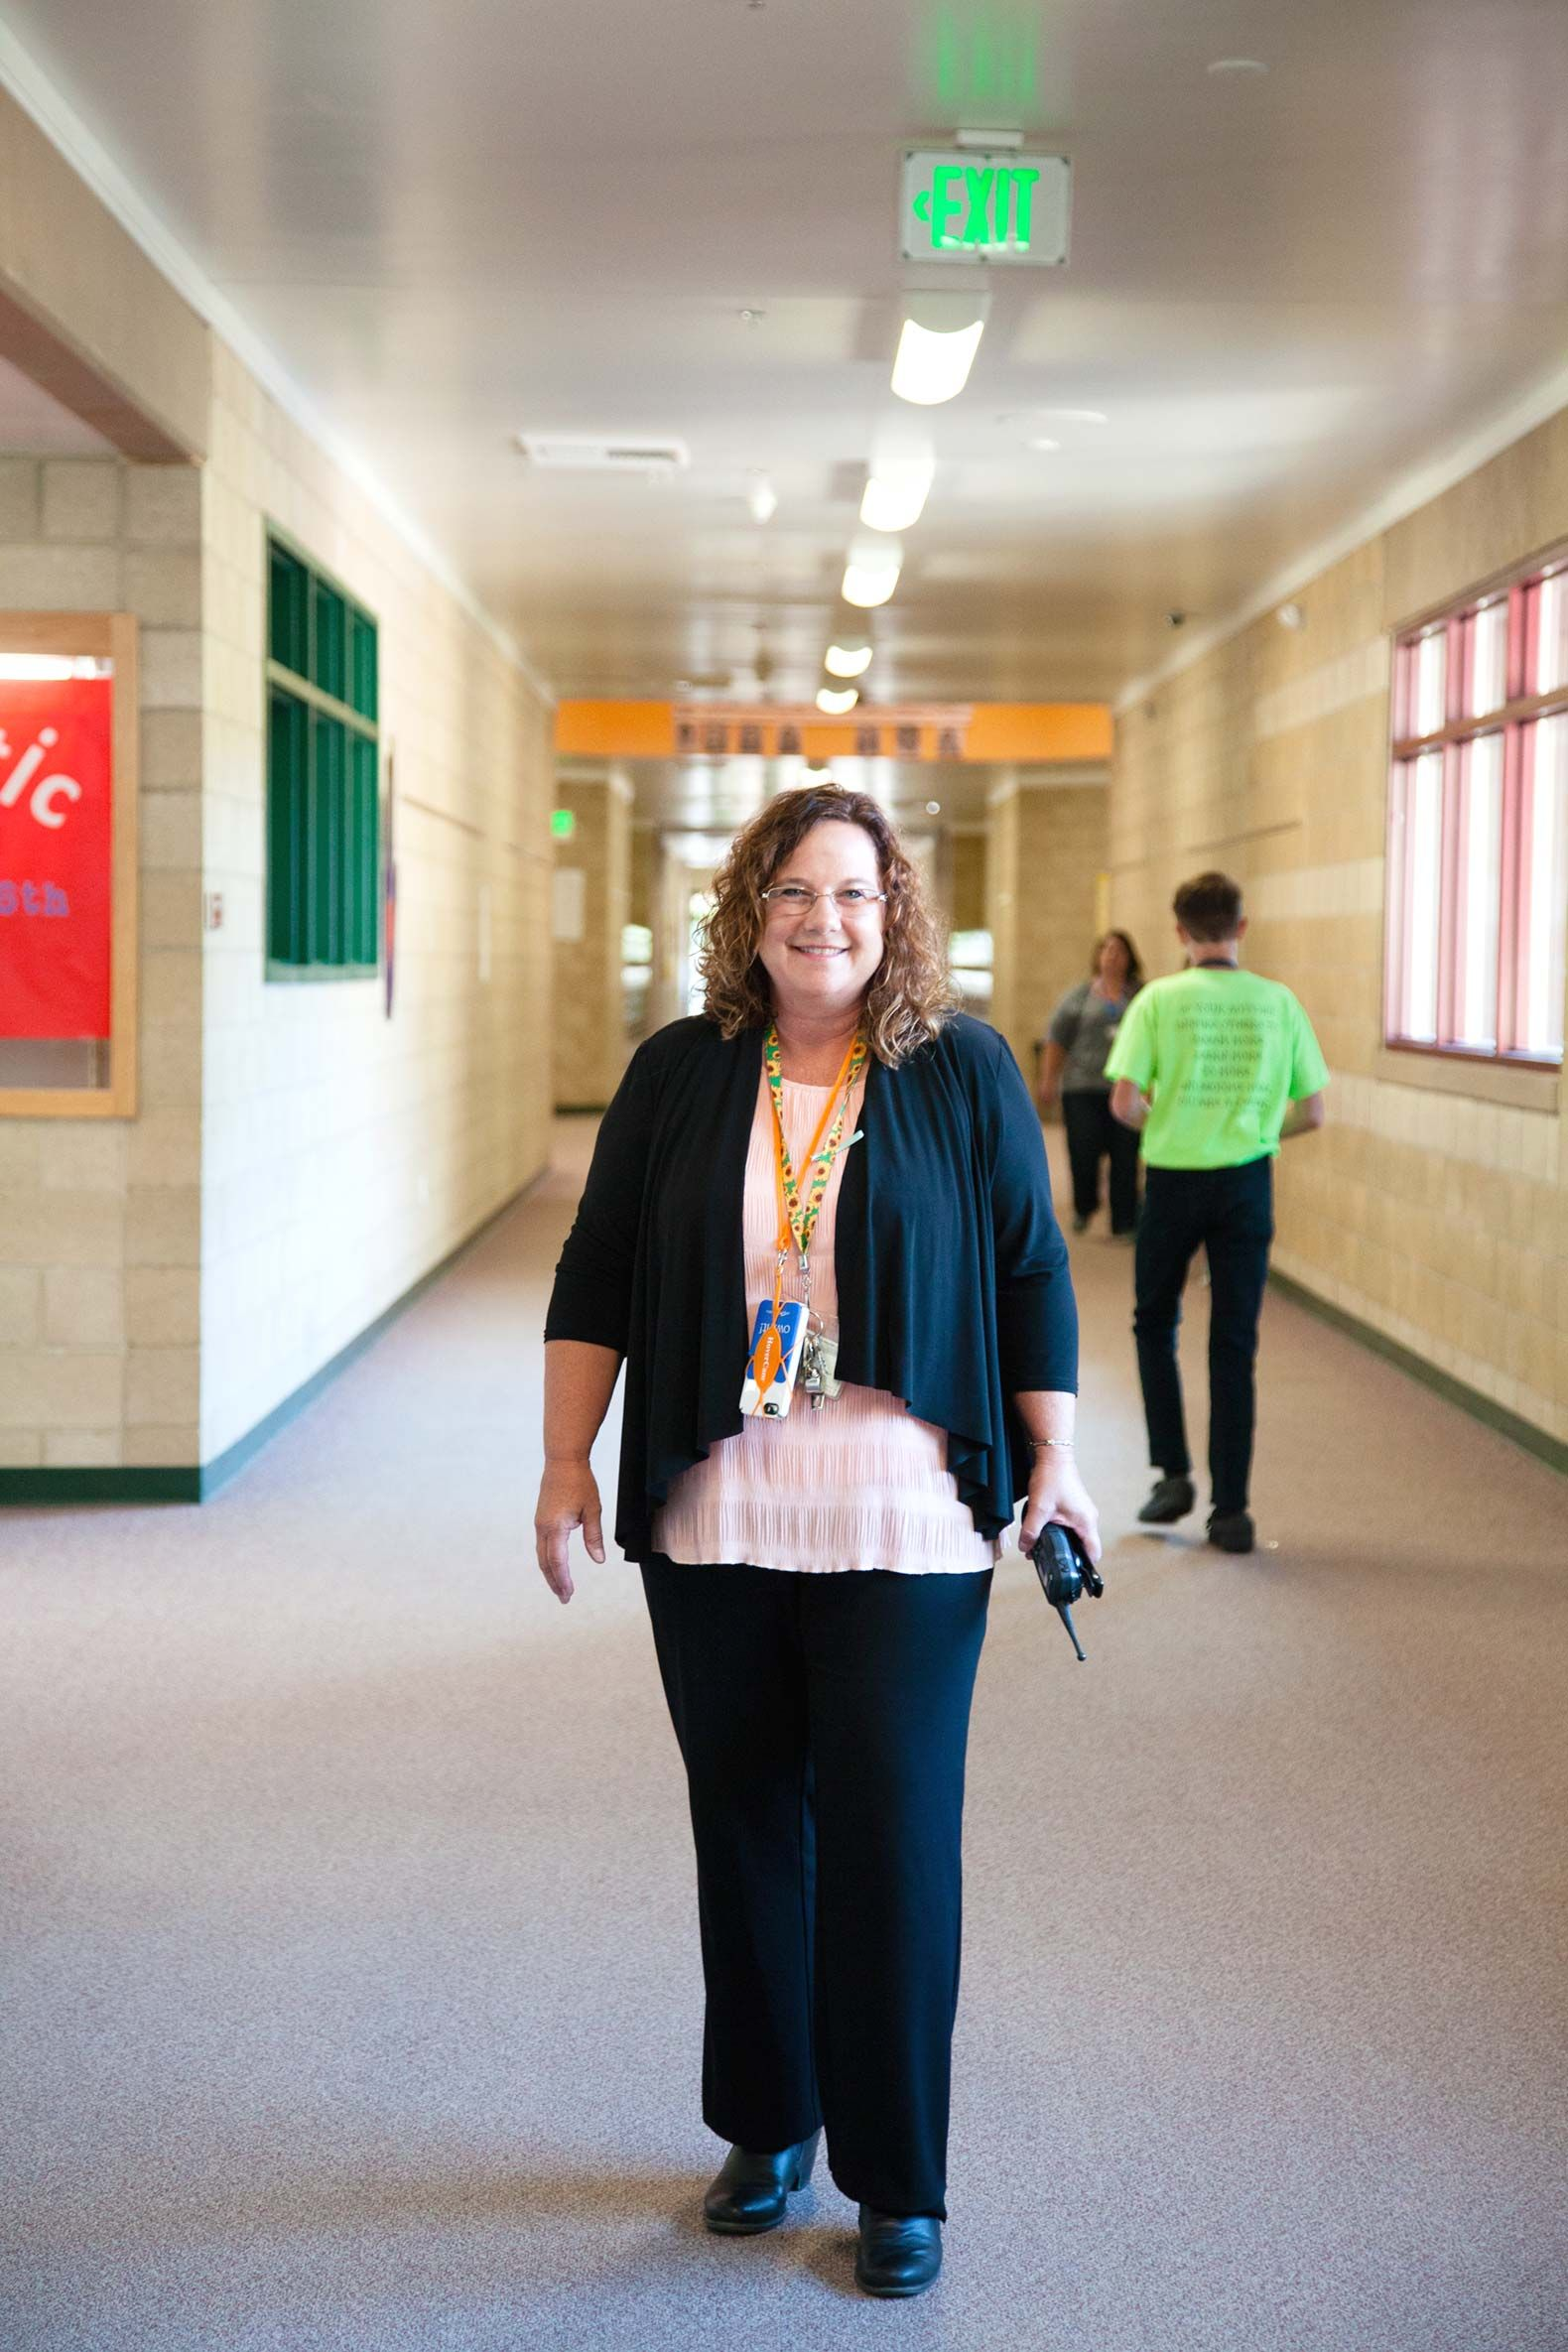 Principal Roberta Duvall walks the halls of Cold Springs Middle School. Duvall is one of the district's first administrators trained in SEL practices.